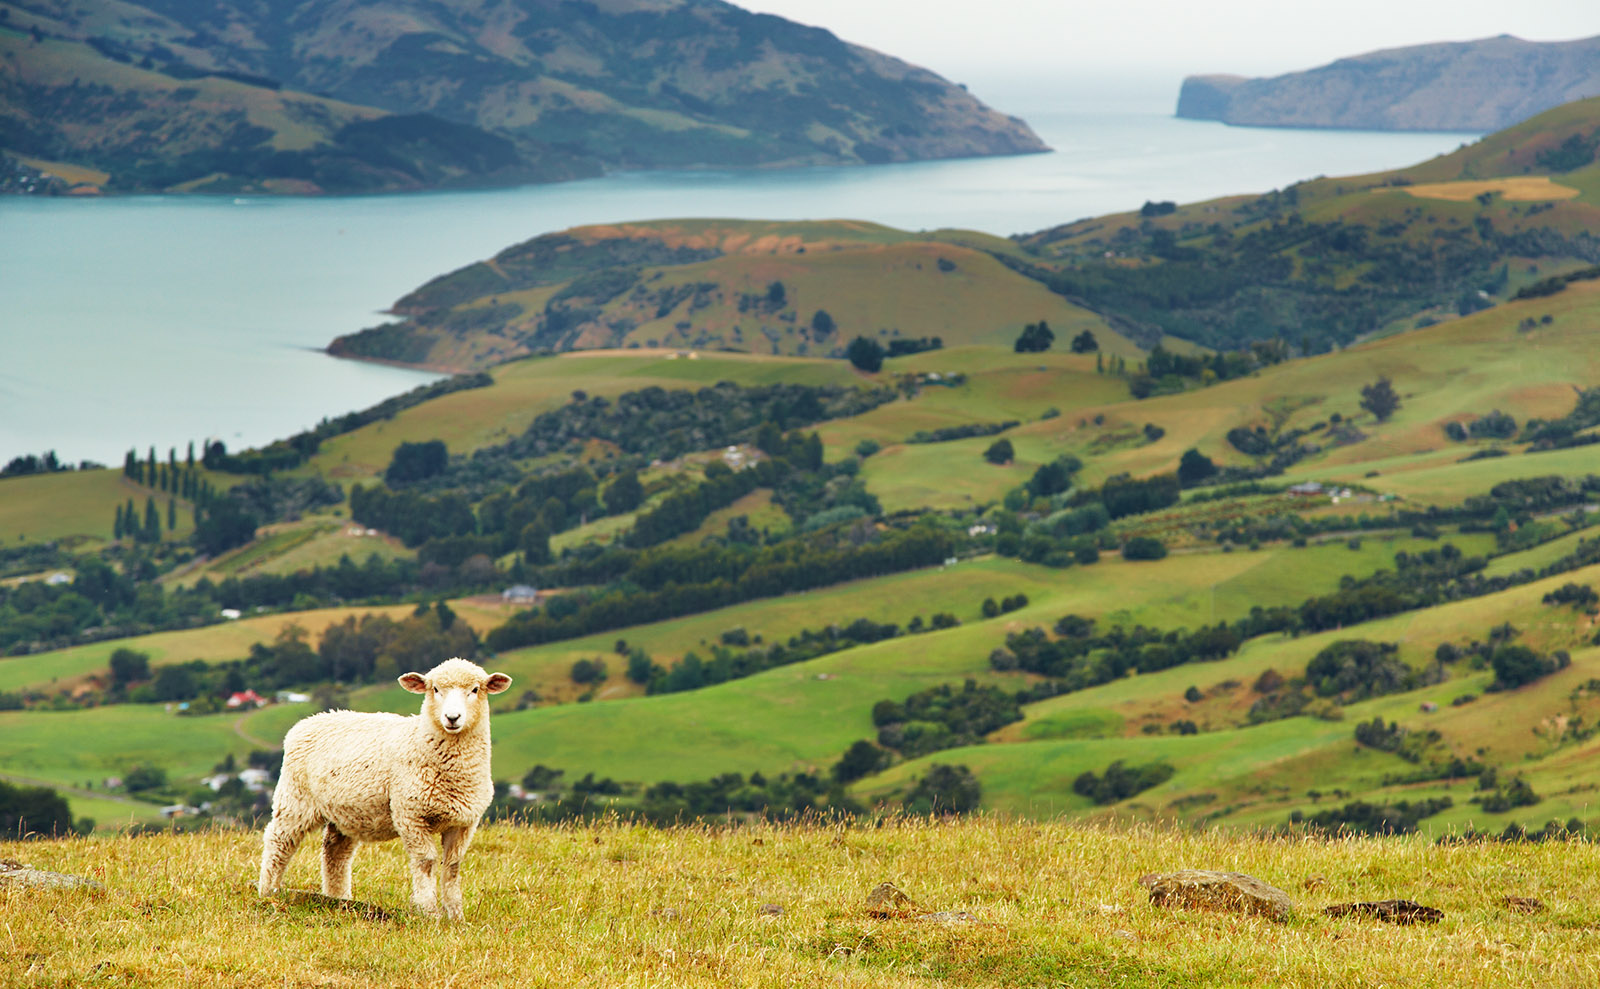 a sheep standing in the green grass overlooking the coast in new zealand